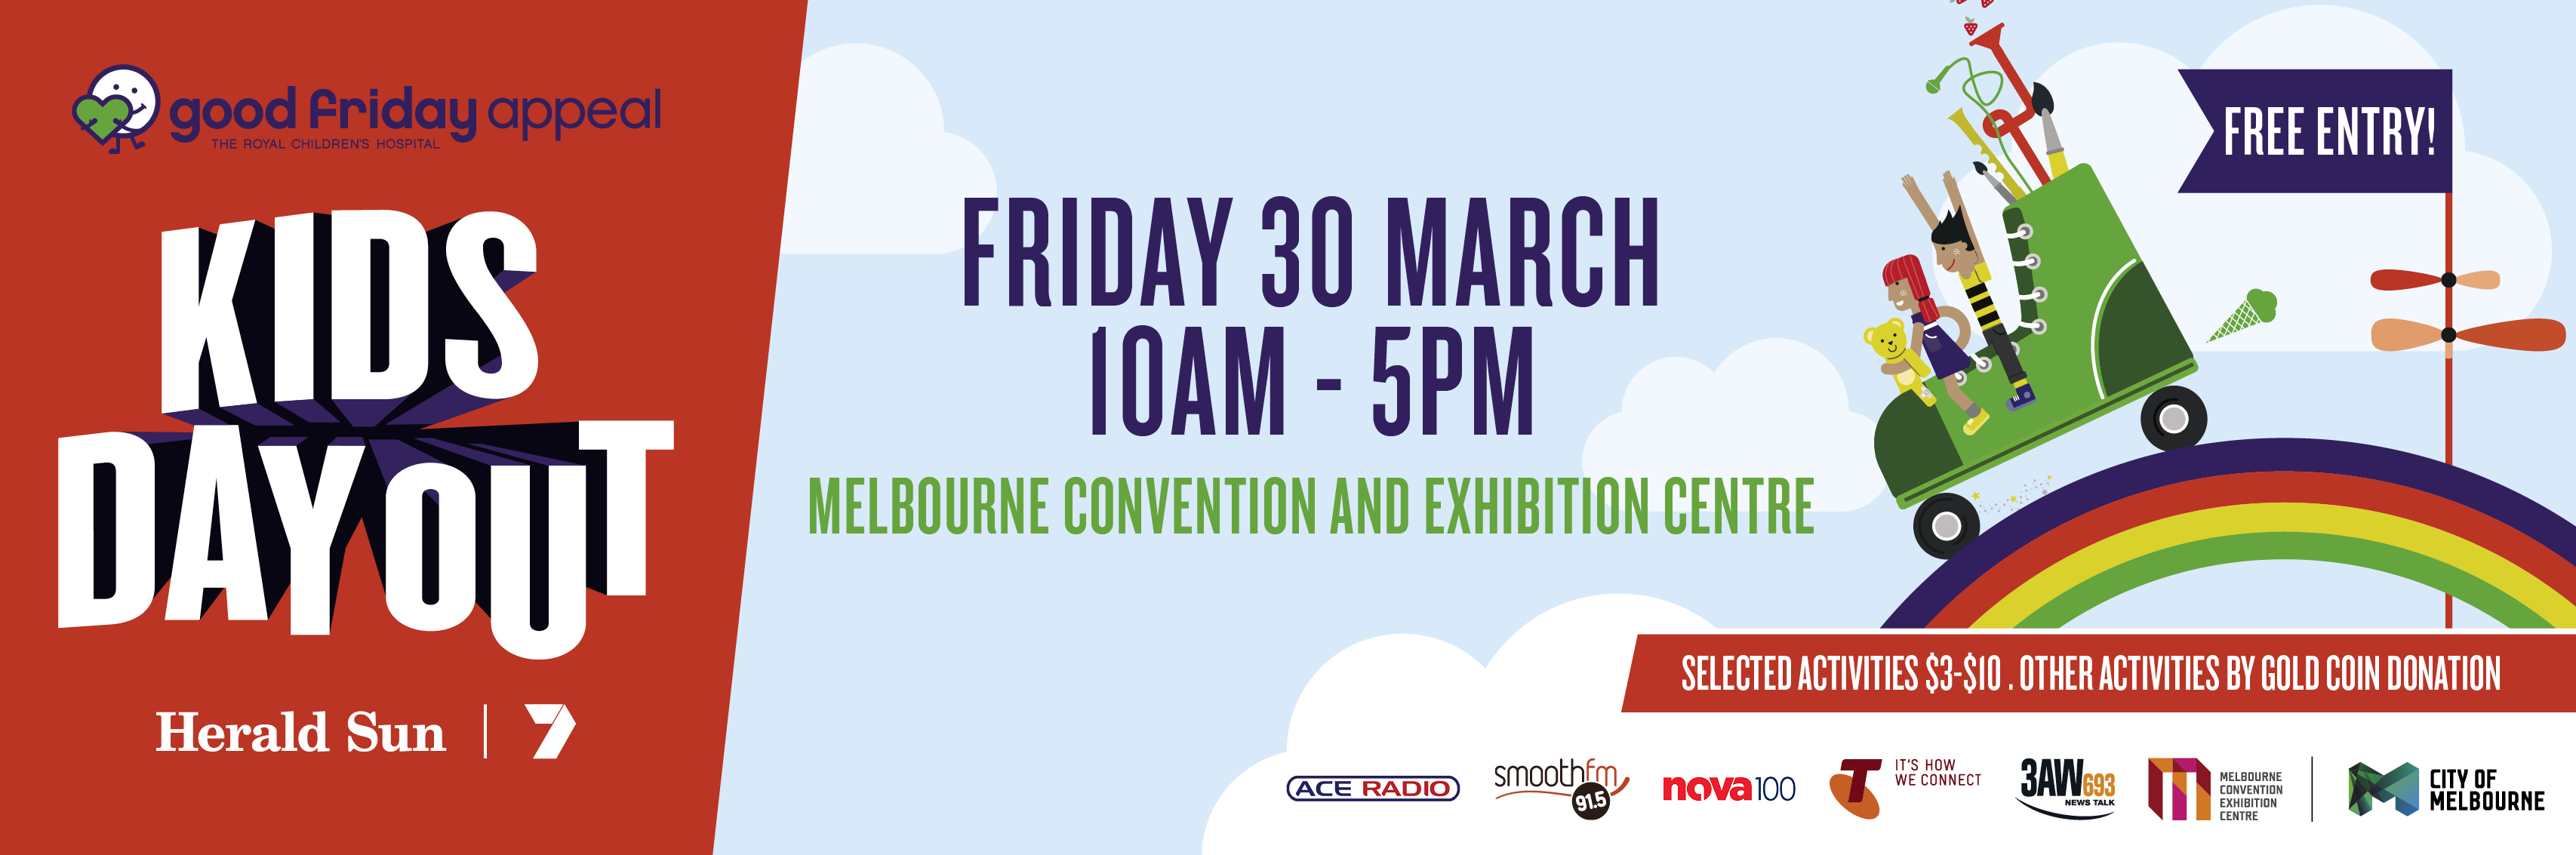 Kidzaid australia 2018 cpr challenge kidzaid australia this good friday 30th march the cpr challenge will be pumping the life through the heart of melbourne located at the mcec with the kids day out negle Gallery